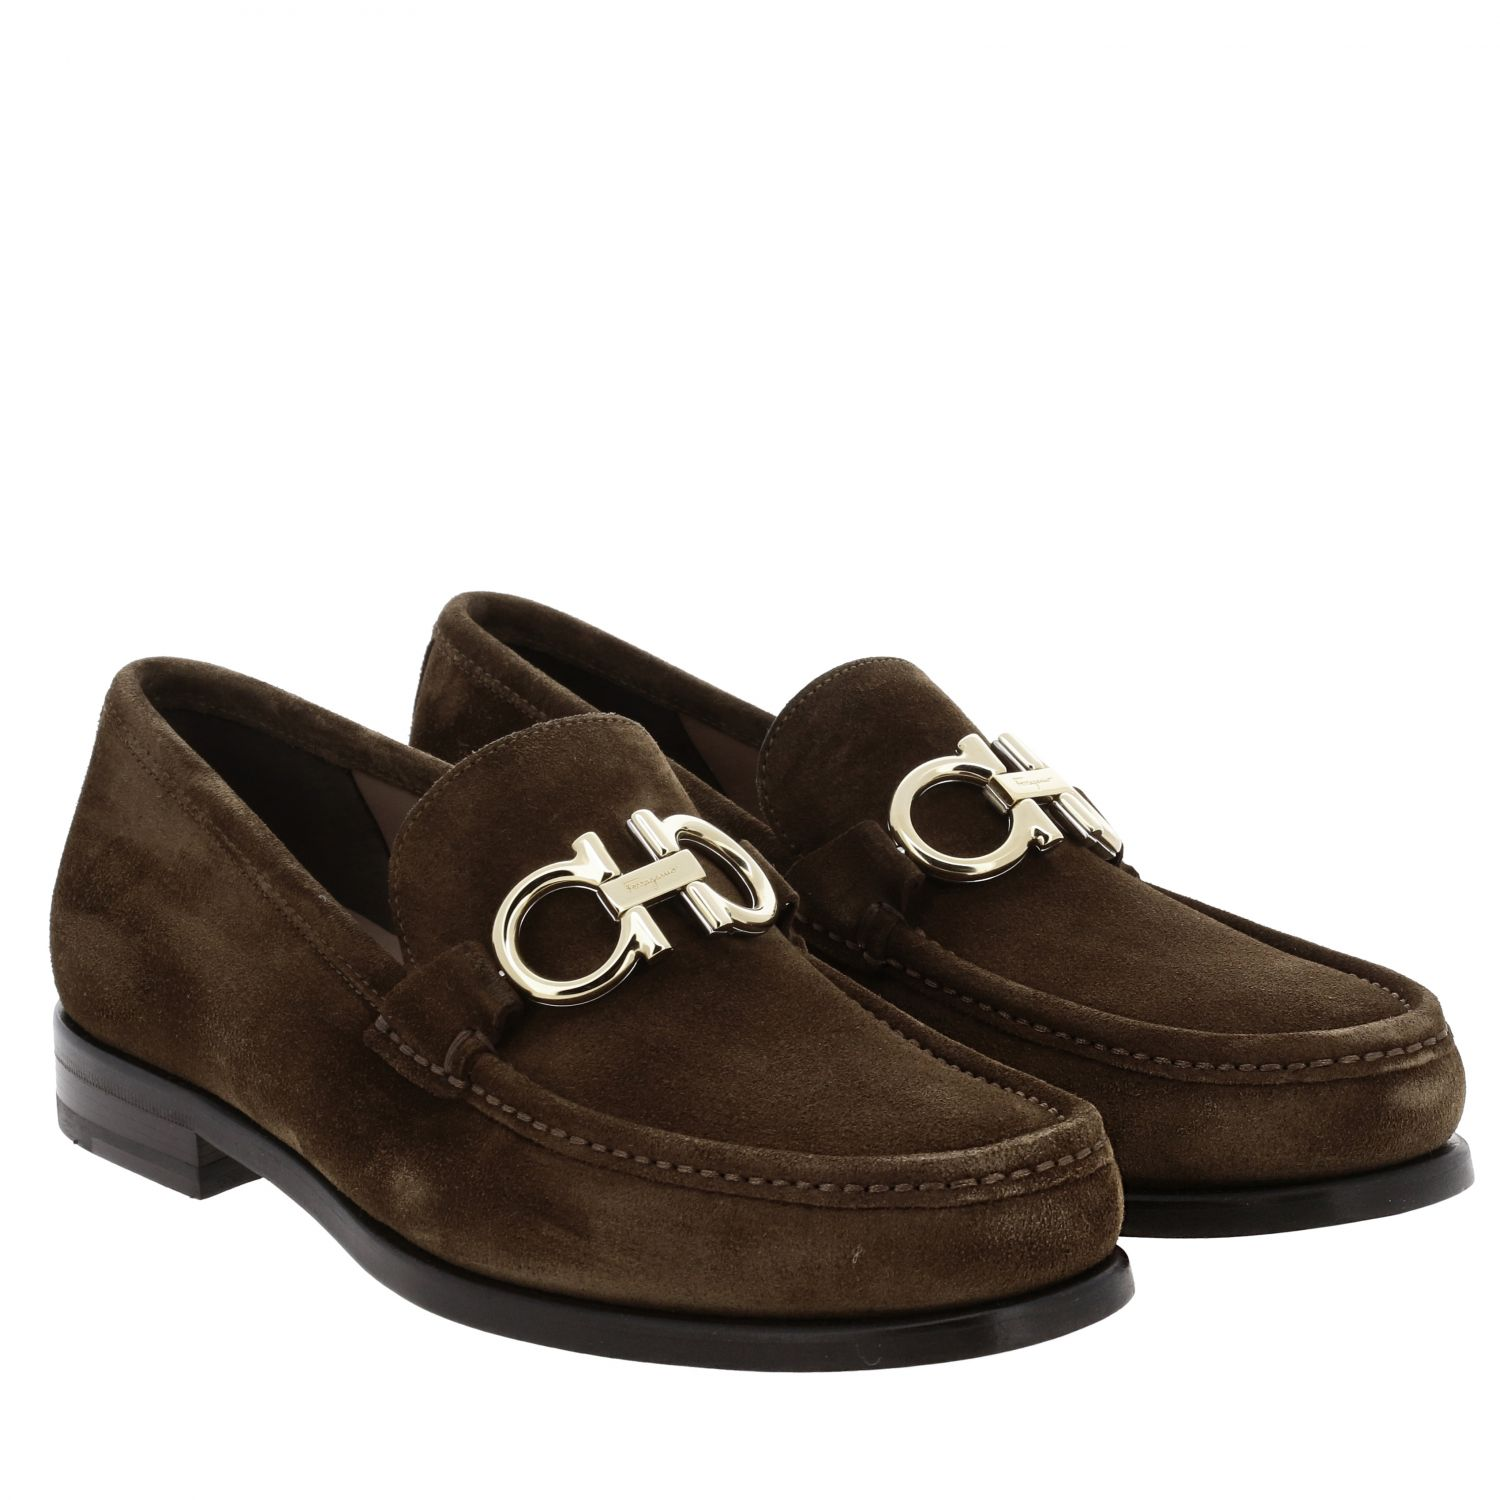 Shoes men Salvatore Ferragamo brown 2